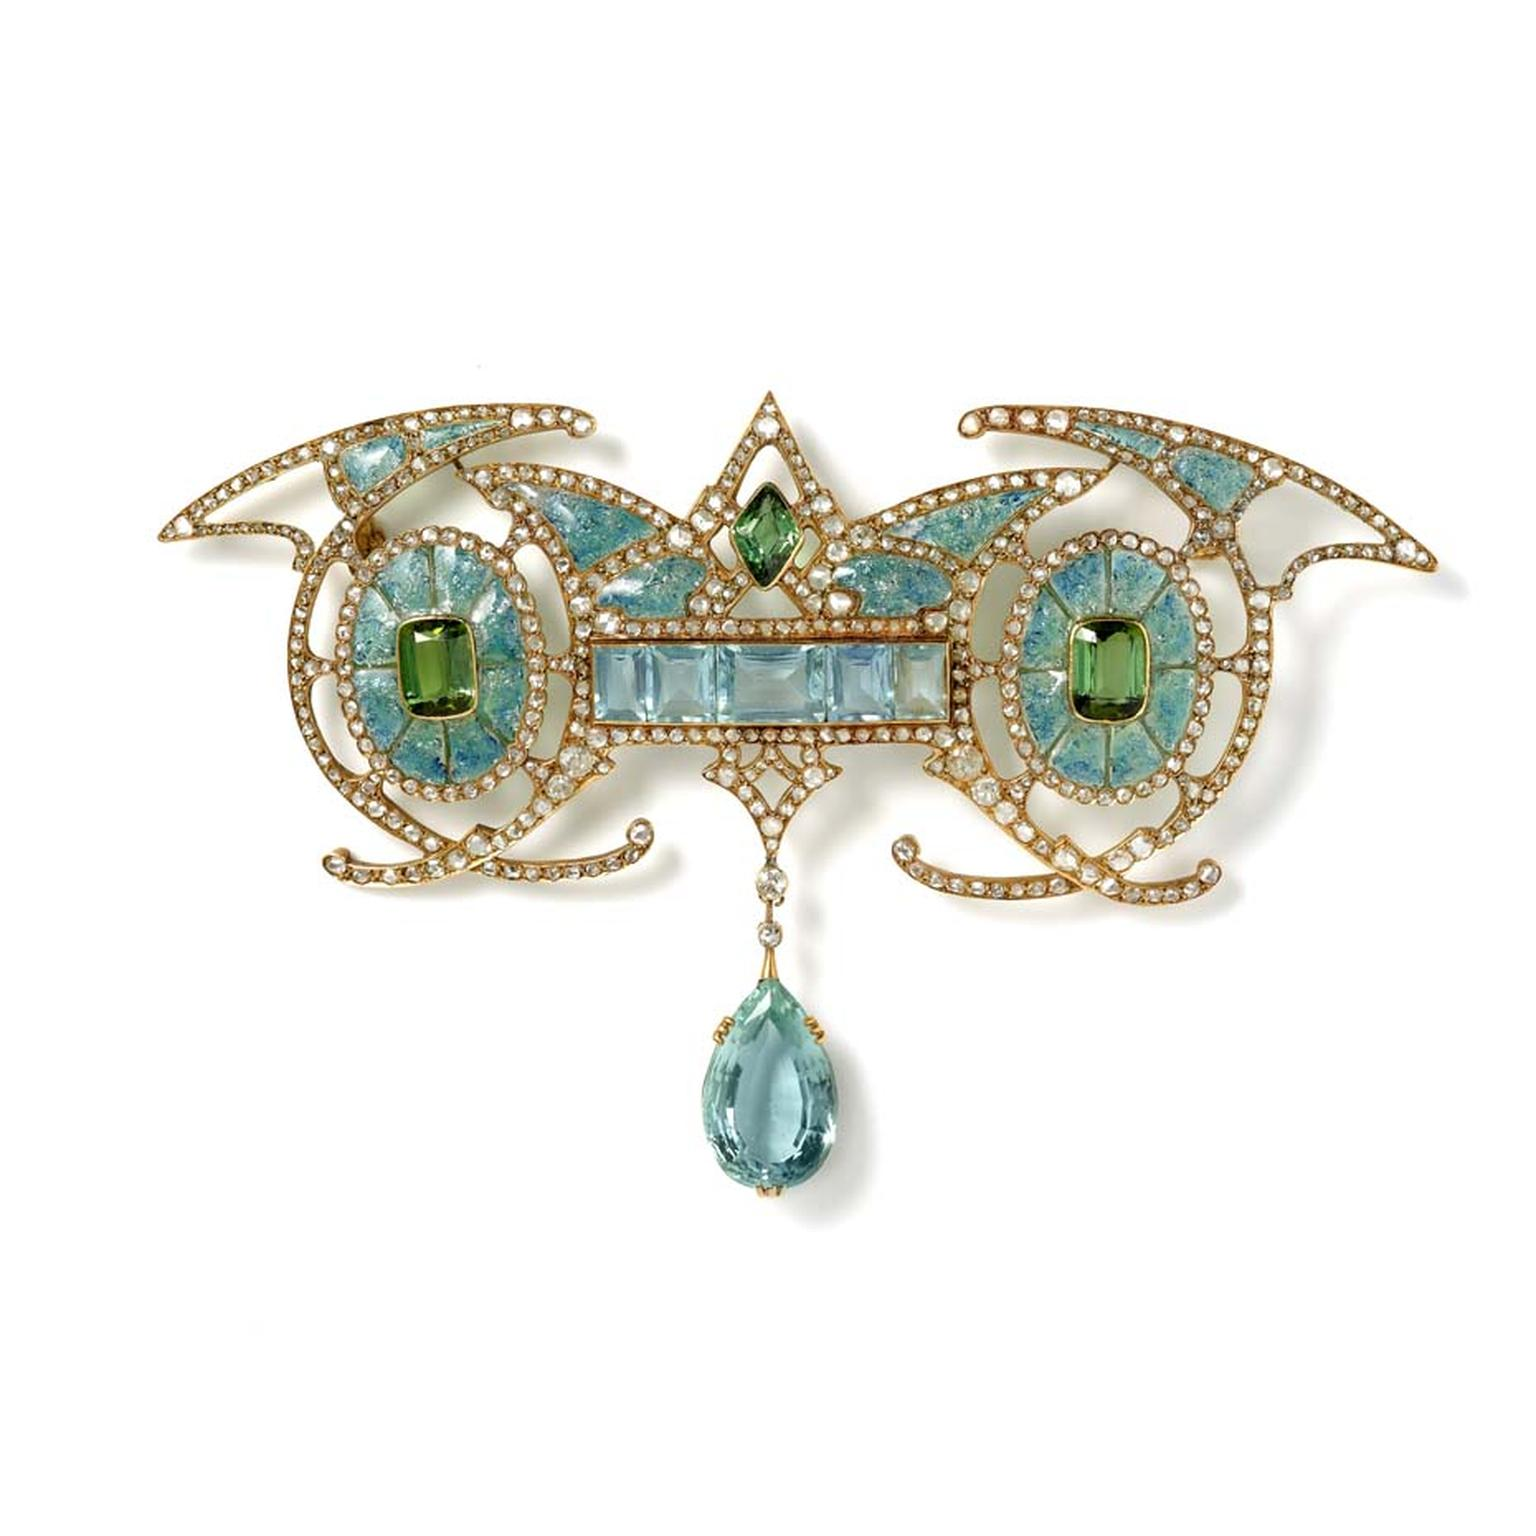 Art Nouveau yellow gold brooch designed with a central aquamarine panel carrying an aquamarine drop, set between two green tourmalines, within enamelled ovals with diamonds, by Georges Fouquet, Paris. Available at Hancocks.